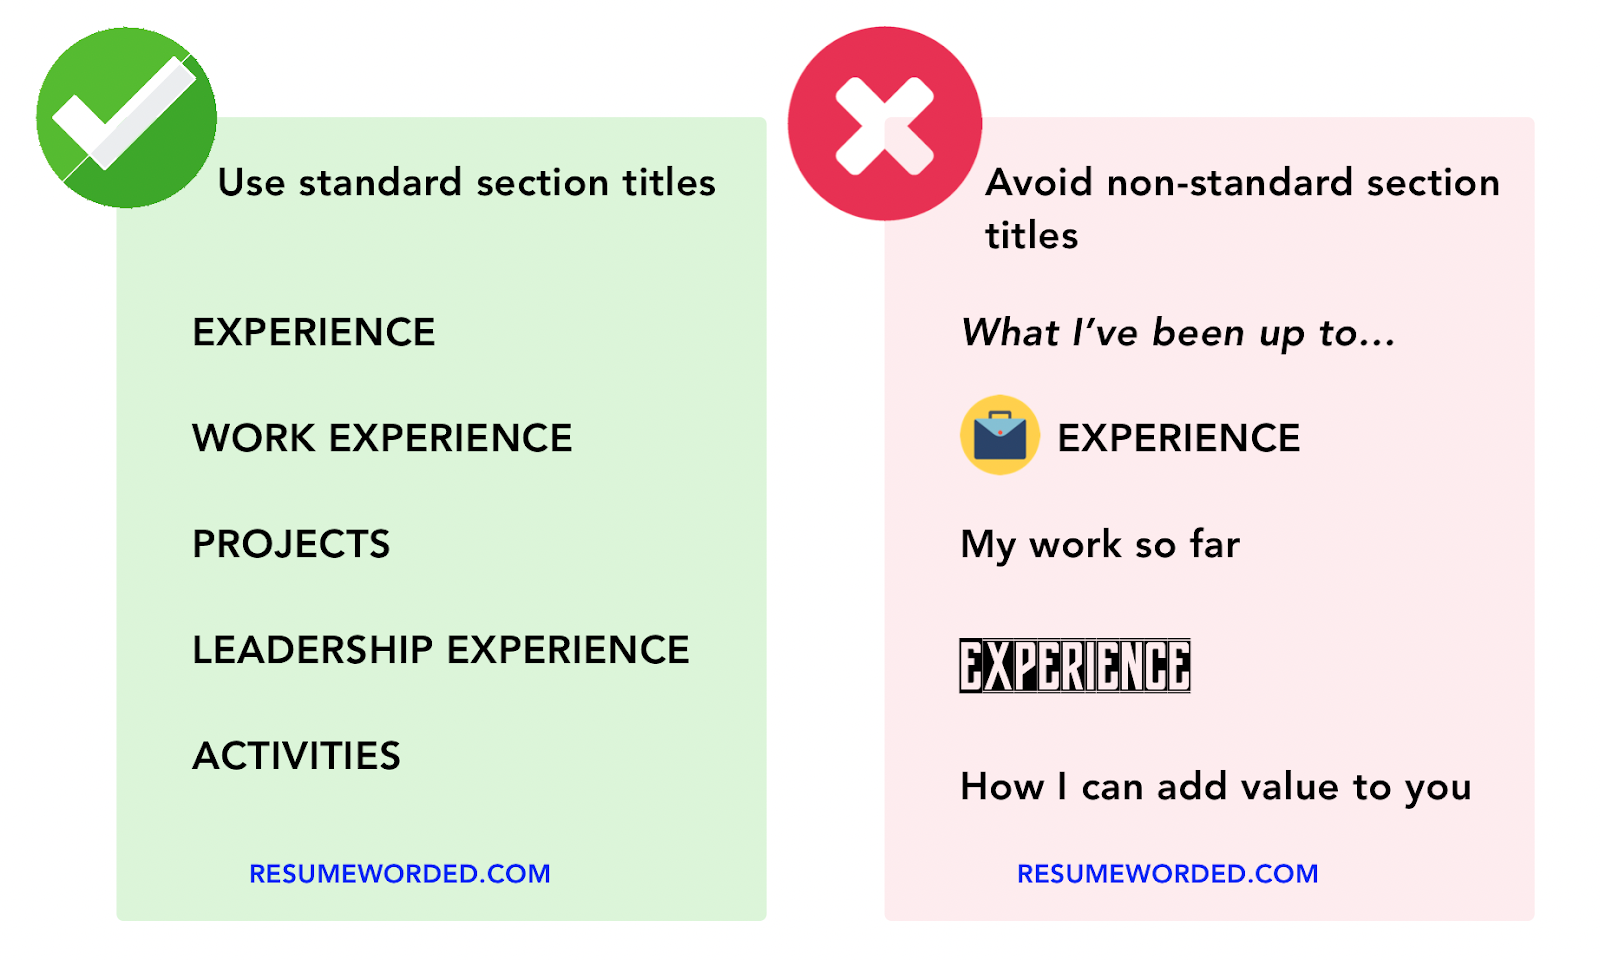 Examples of standard and non-standard section titles